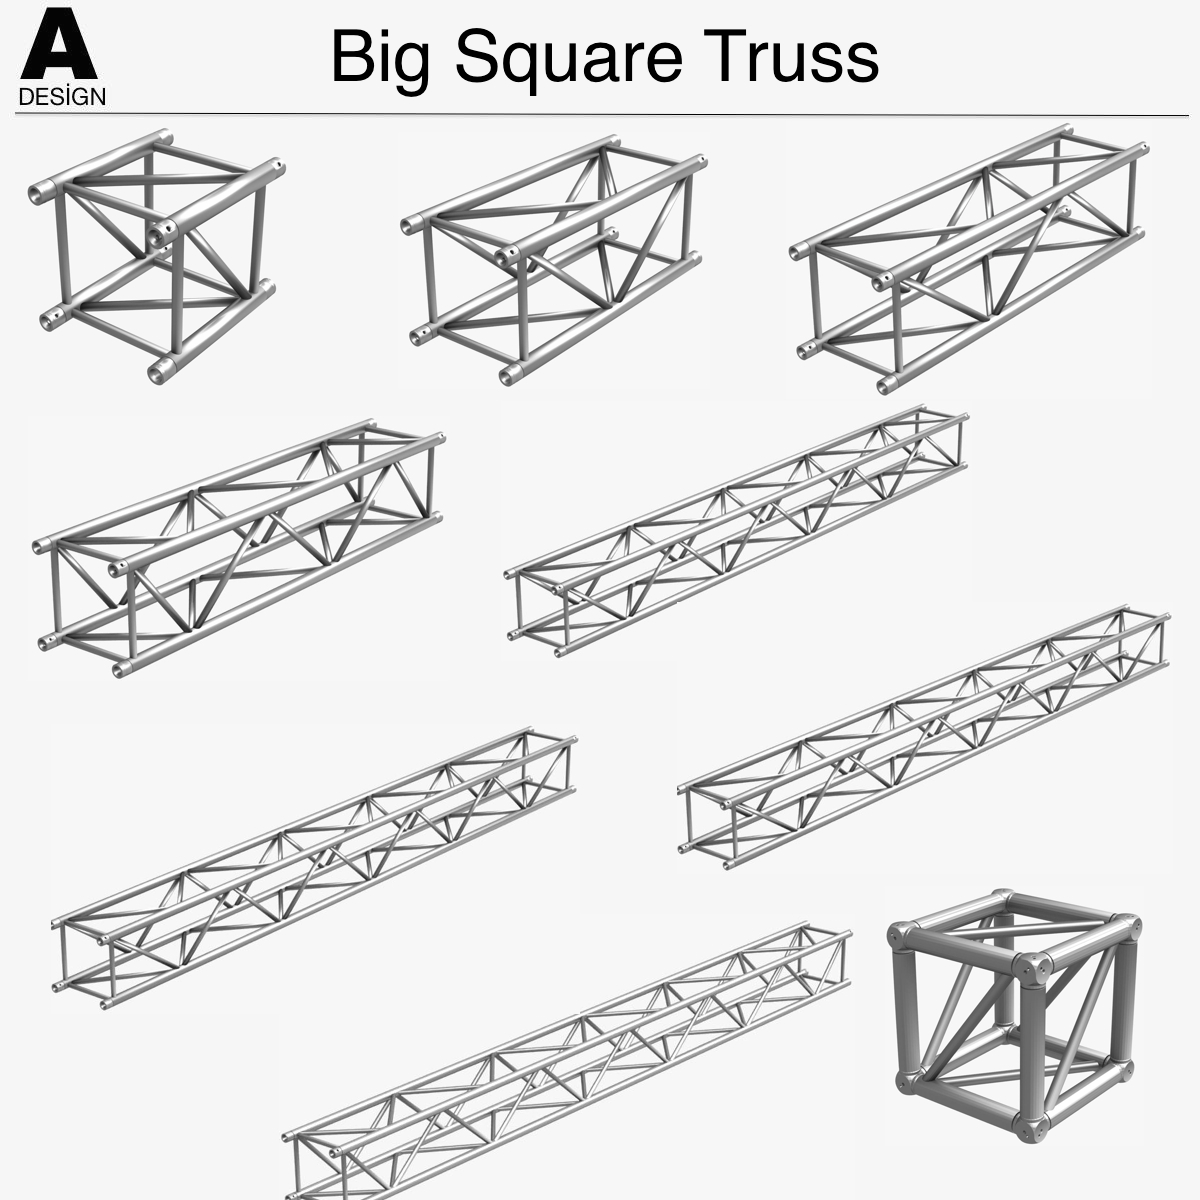 30-07-BigSquareTruss